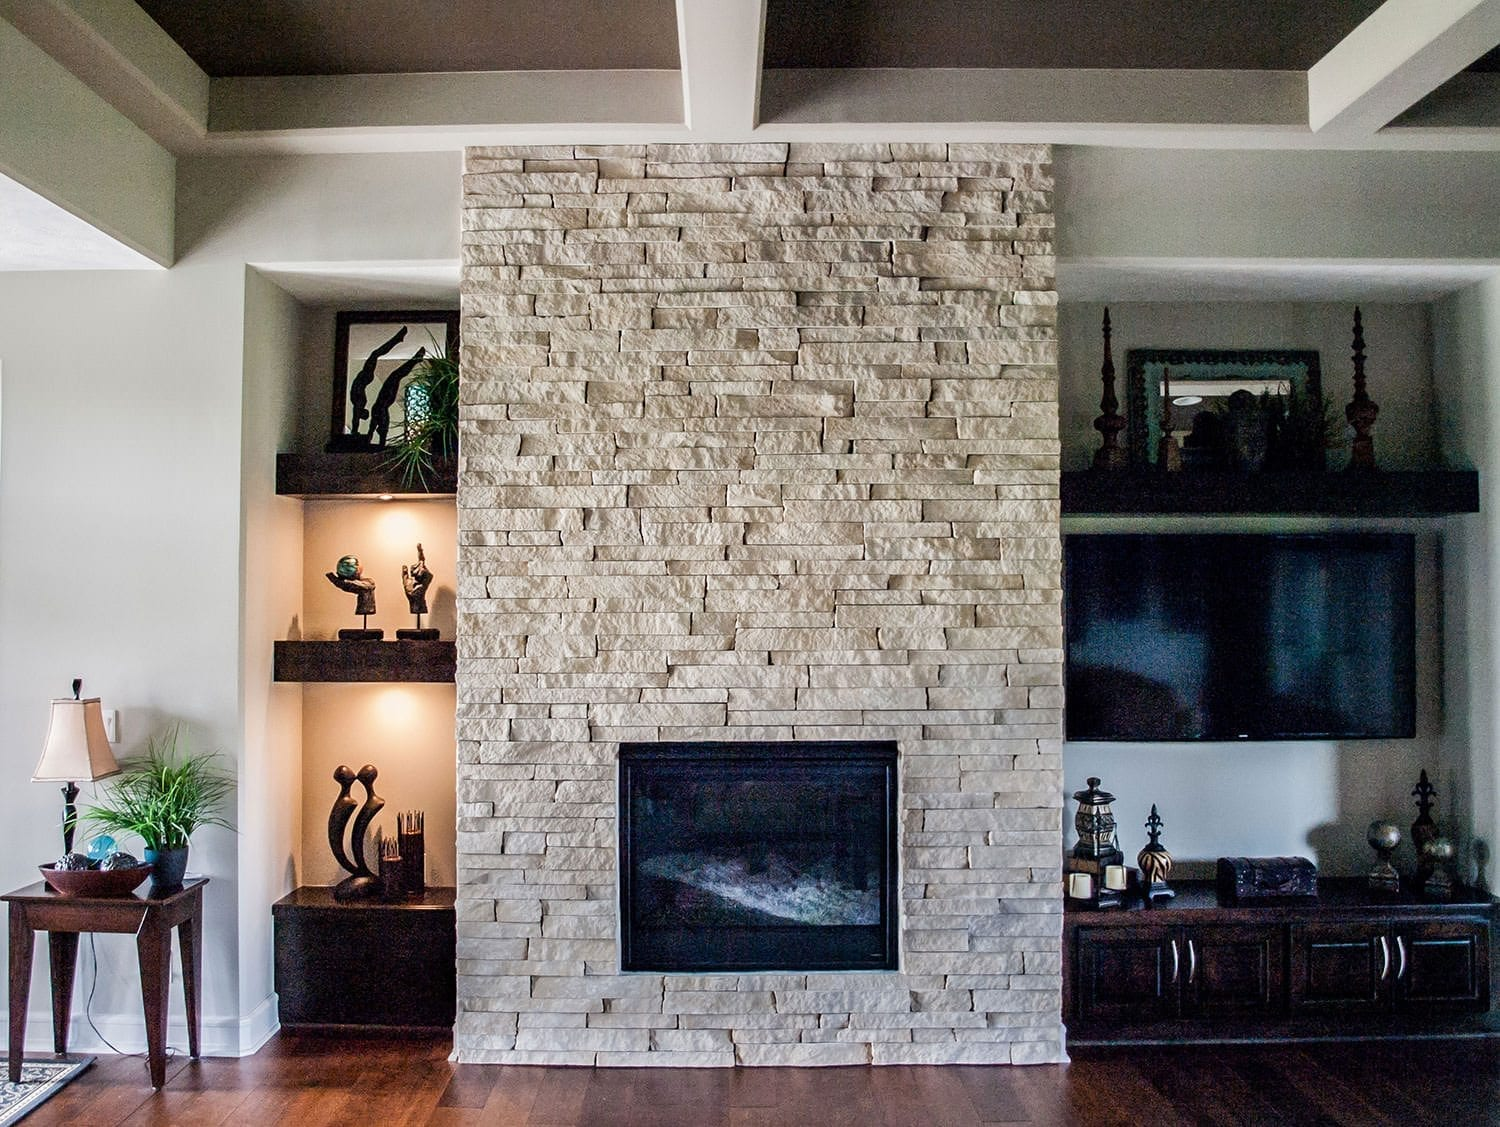 Natural Stone For Fireplace natural stone fireplace ideas - table rock company